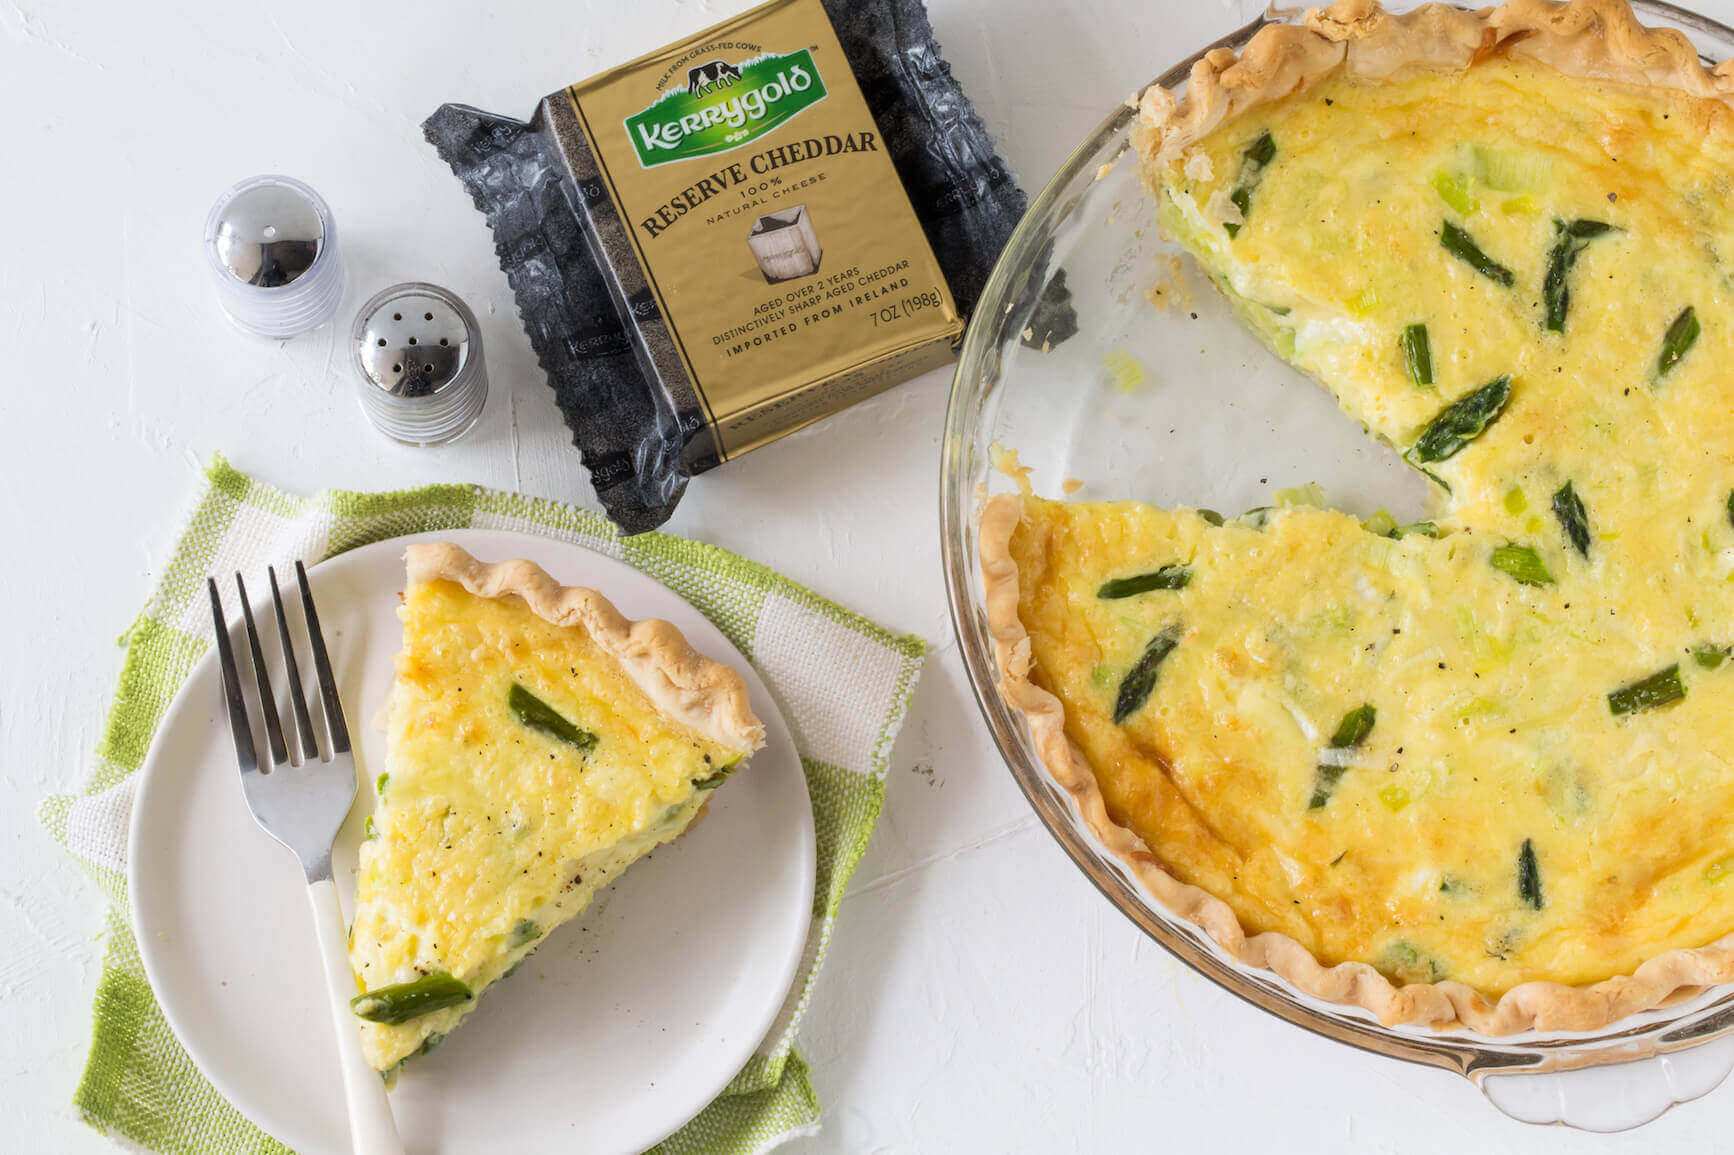 Kerrygold Quiche with Asparagus, Leeks and Kerrygold Reserve Cheddar Cheese